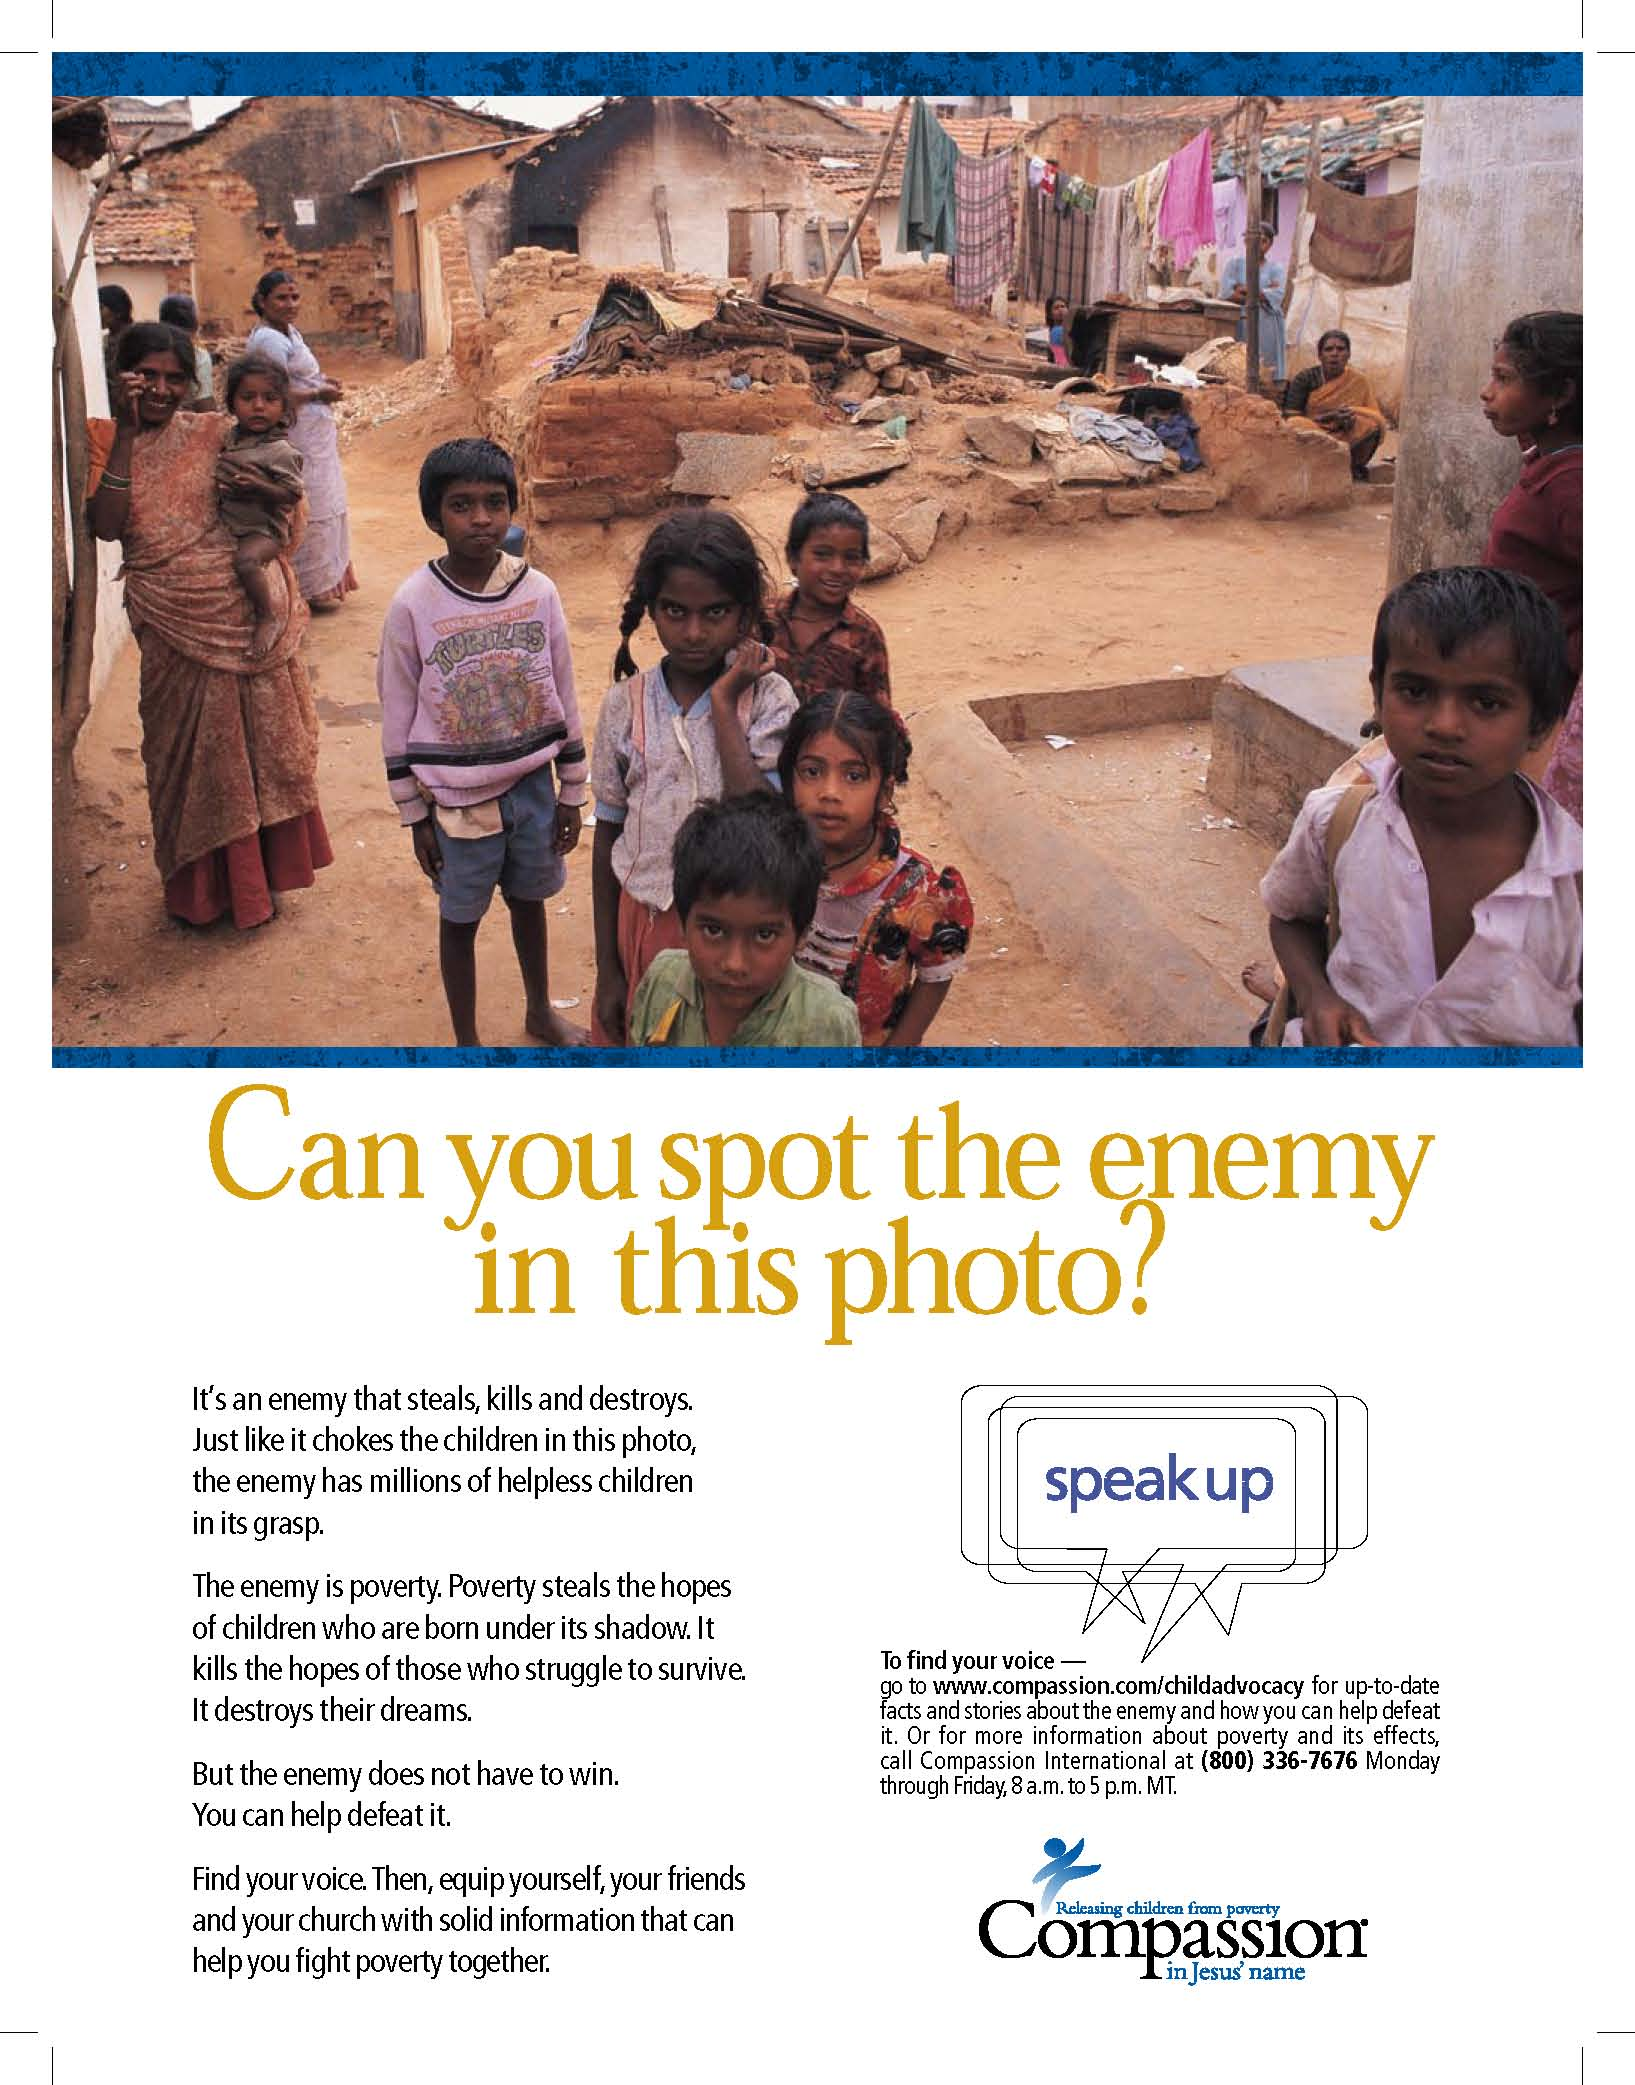 Ad for Compassion International